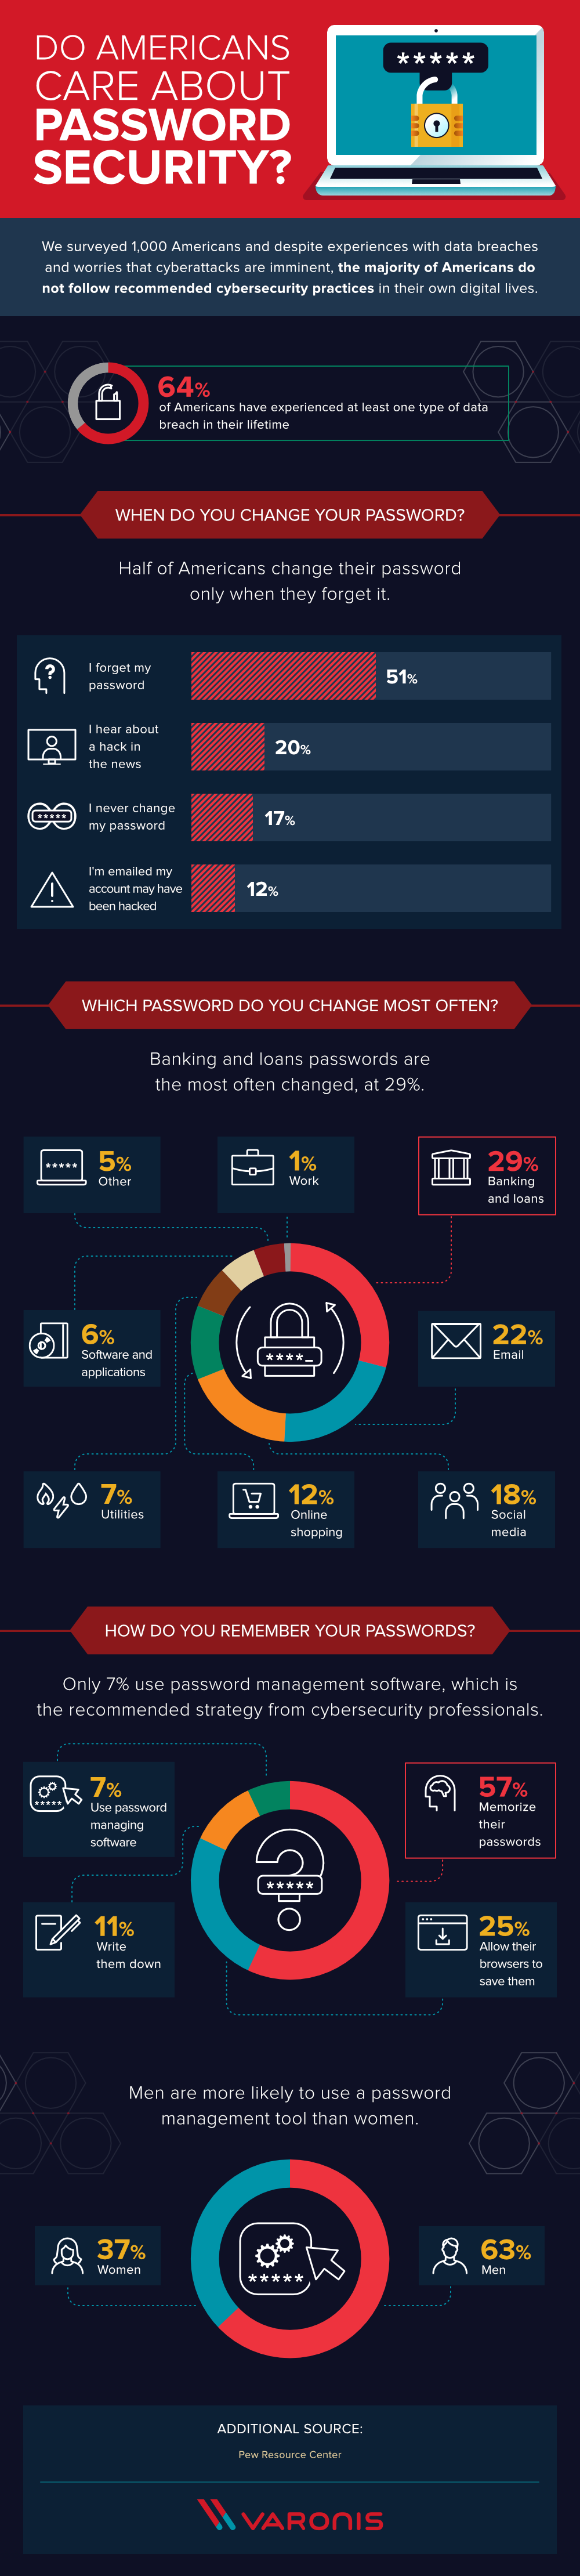 Do Americans Care About Password Security?